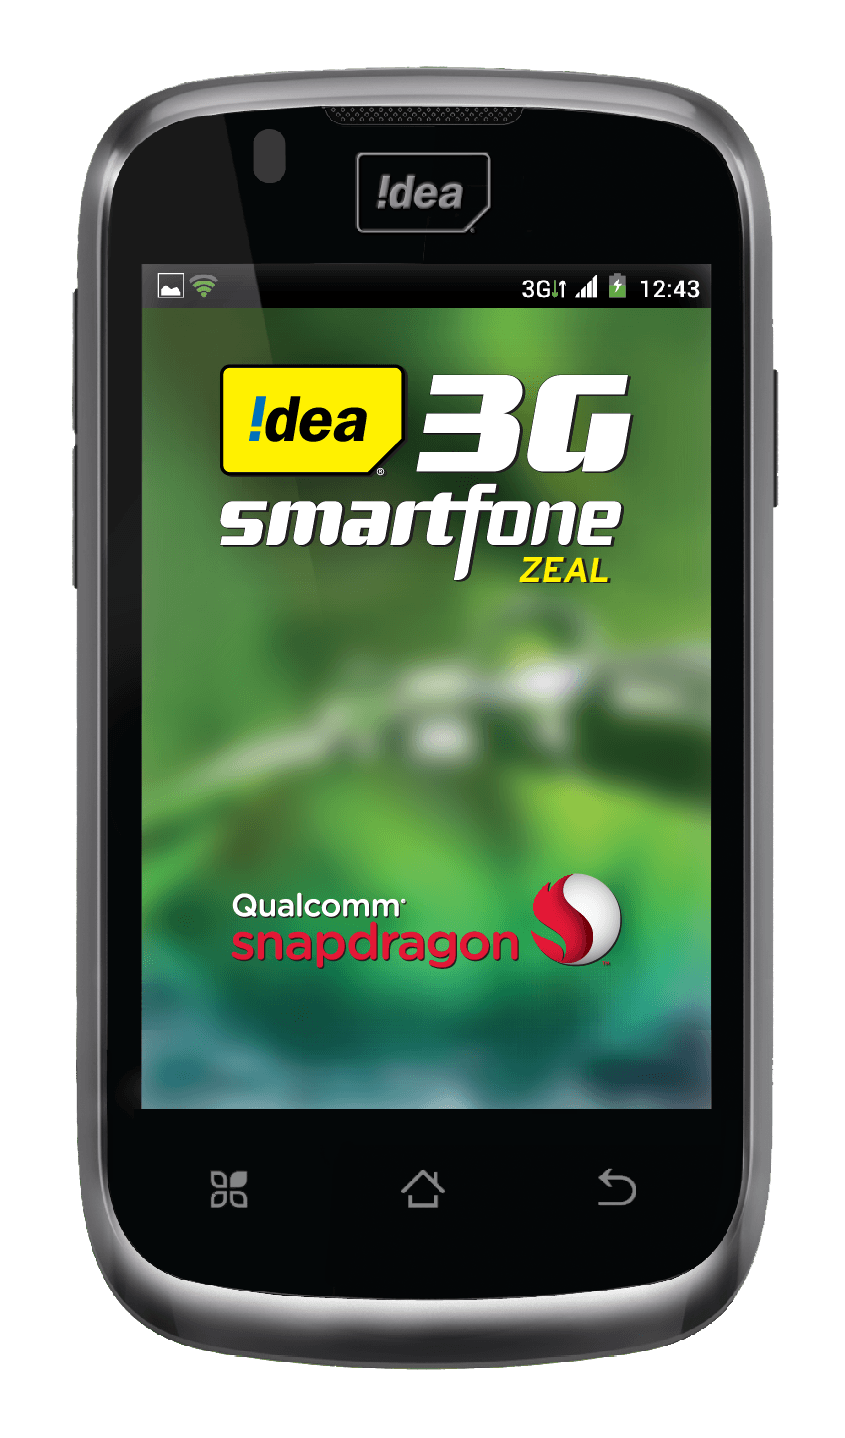 Idea Cellular Launches 3g Smartphone Zeal For Rs 5390